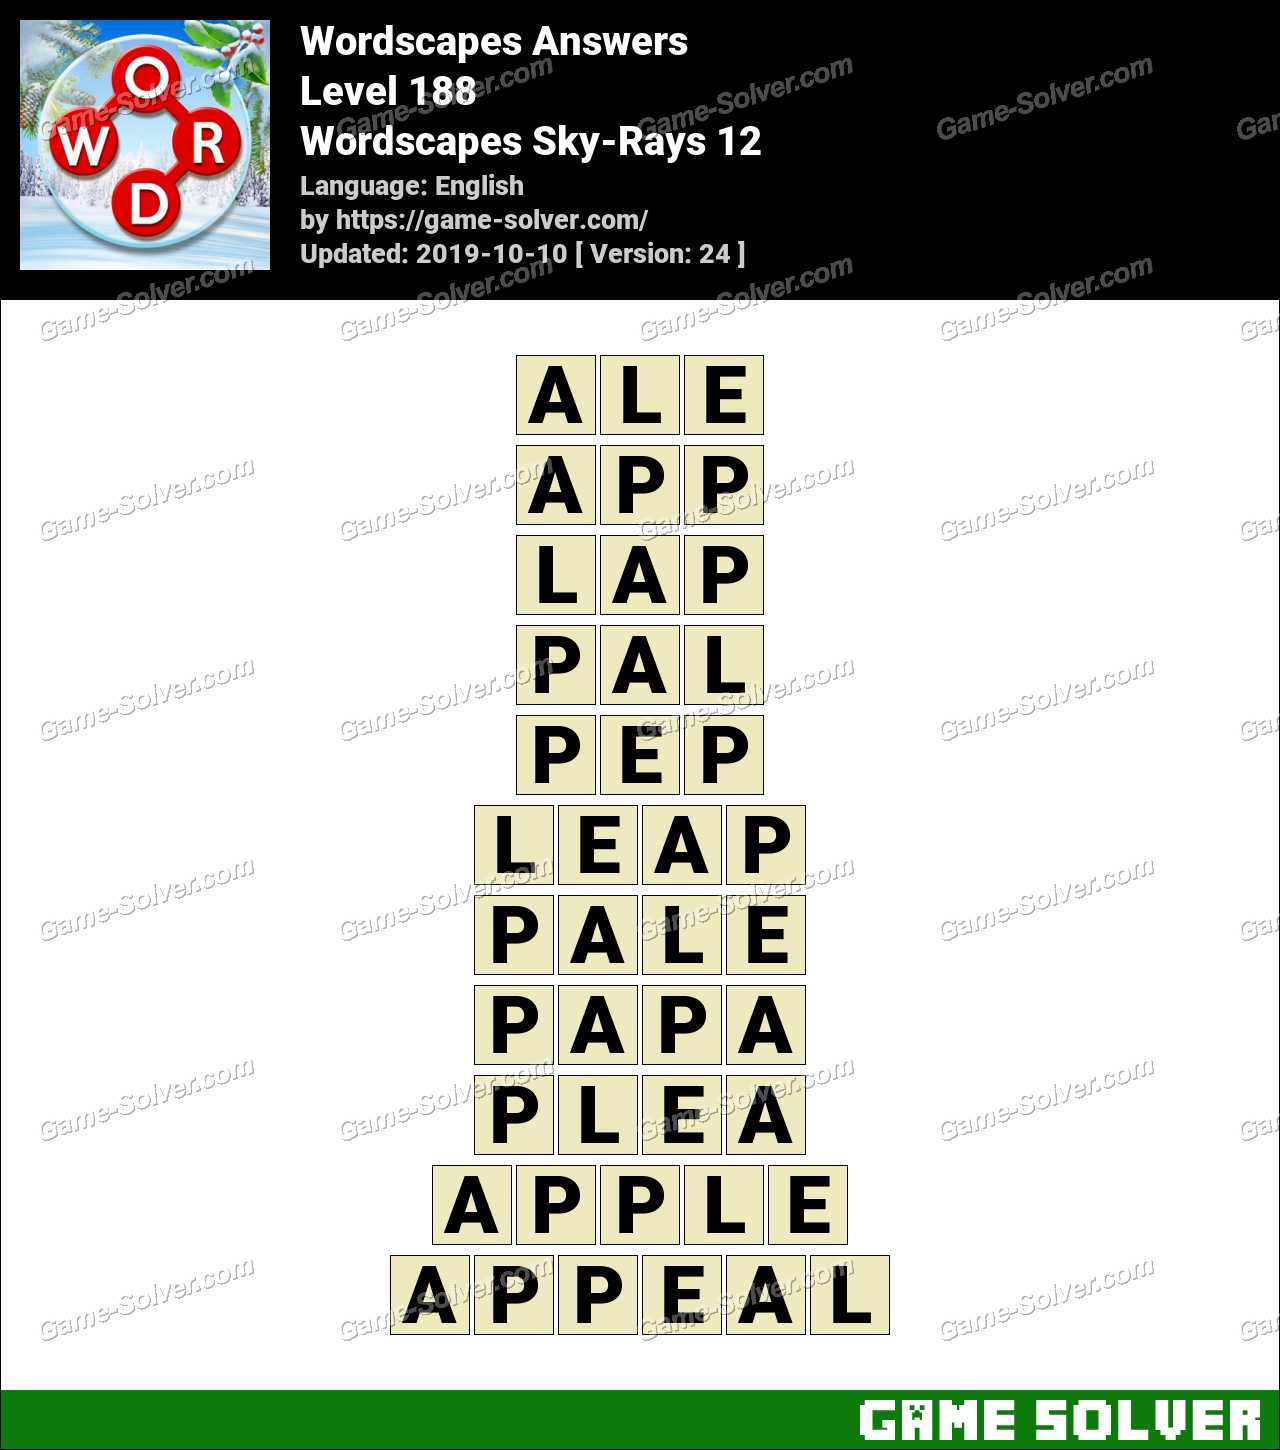 Wordscapes Sky-Rays 12 Answers